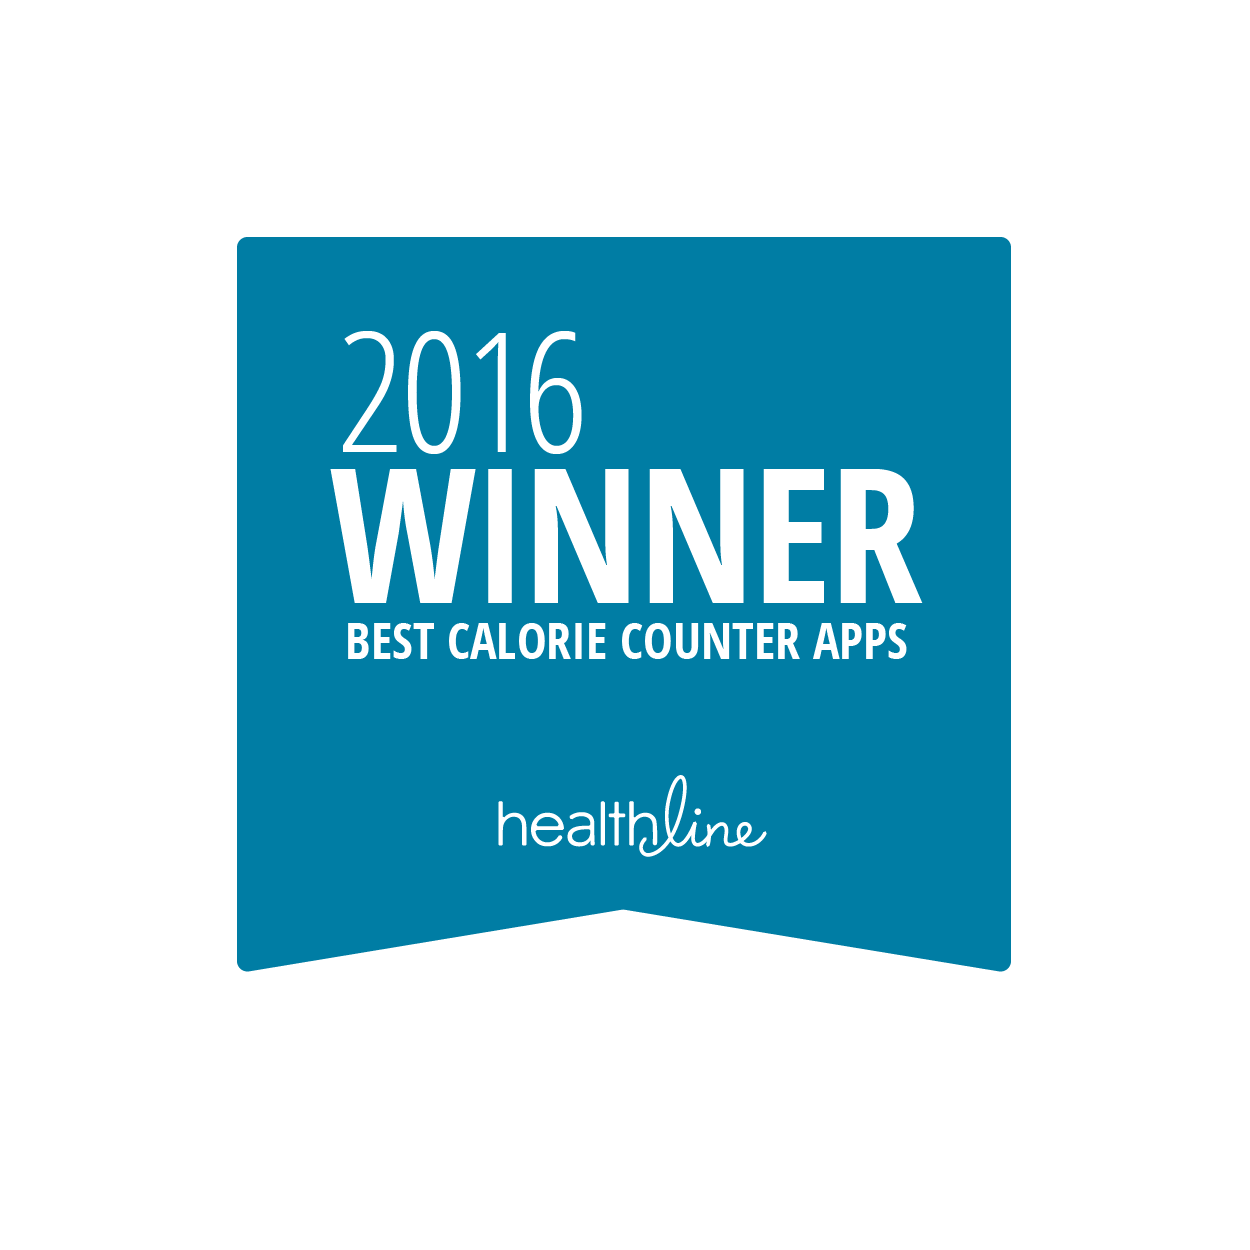 The Best Calorie Counter Apps